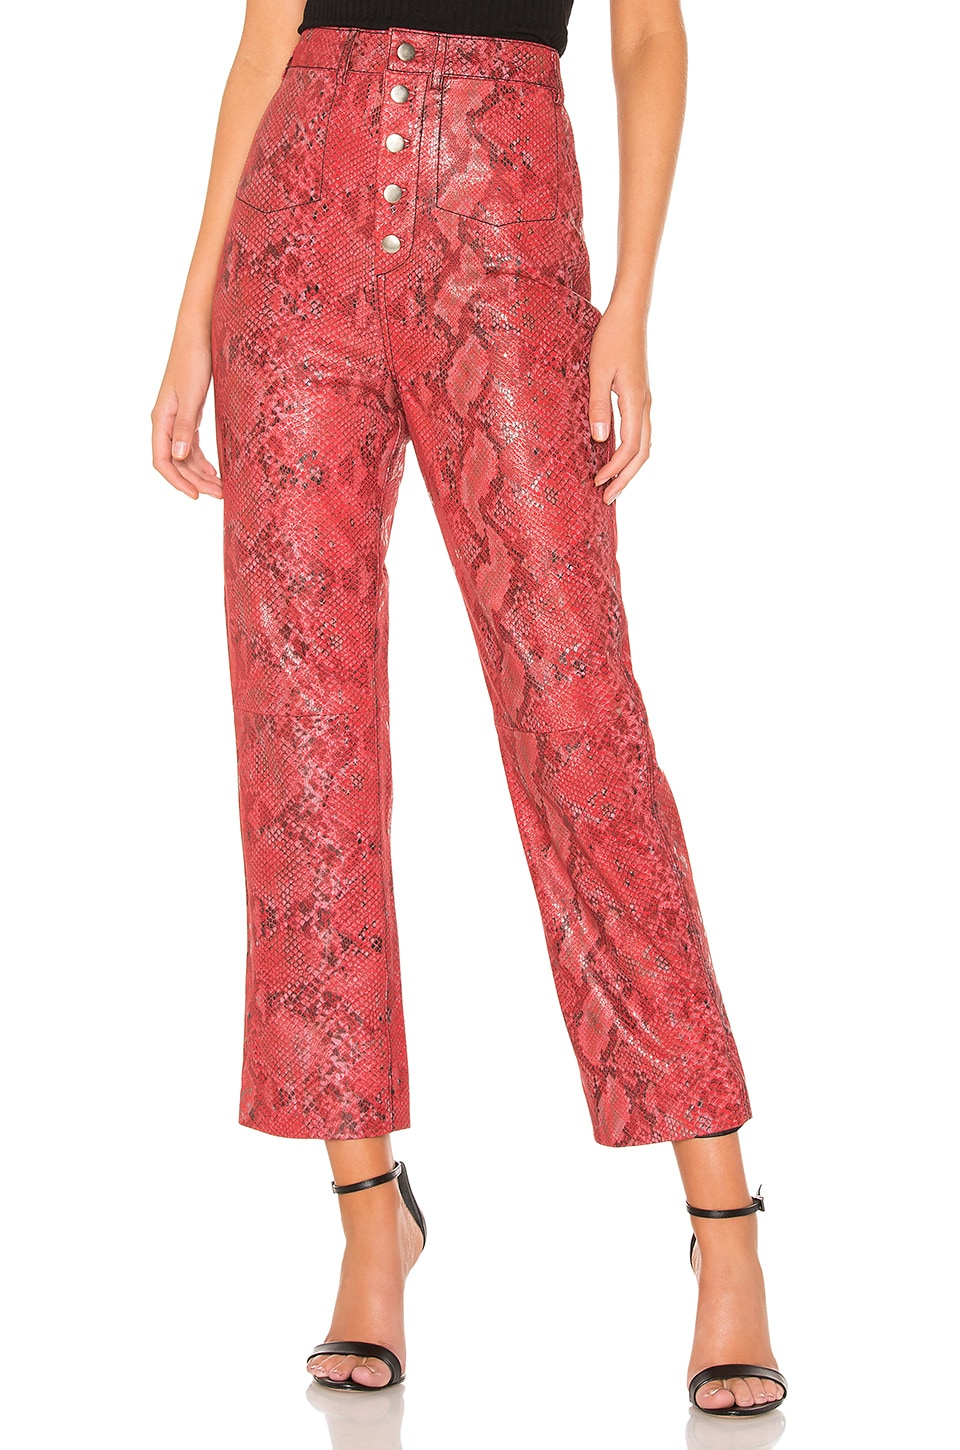 L'Academie The Serpent Leather Pant in Snake